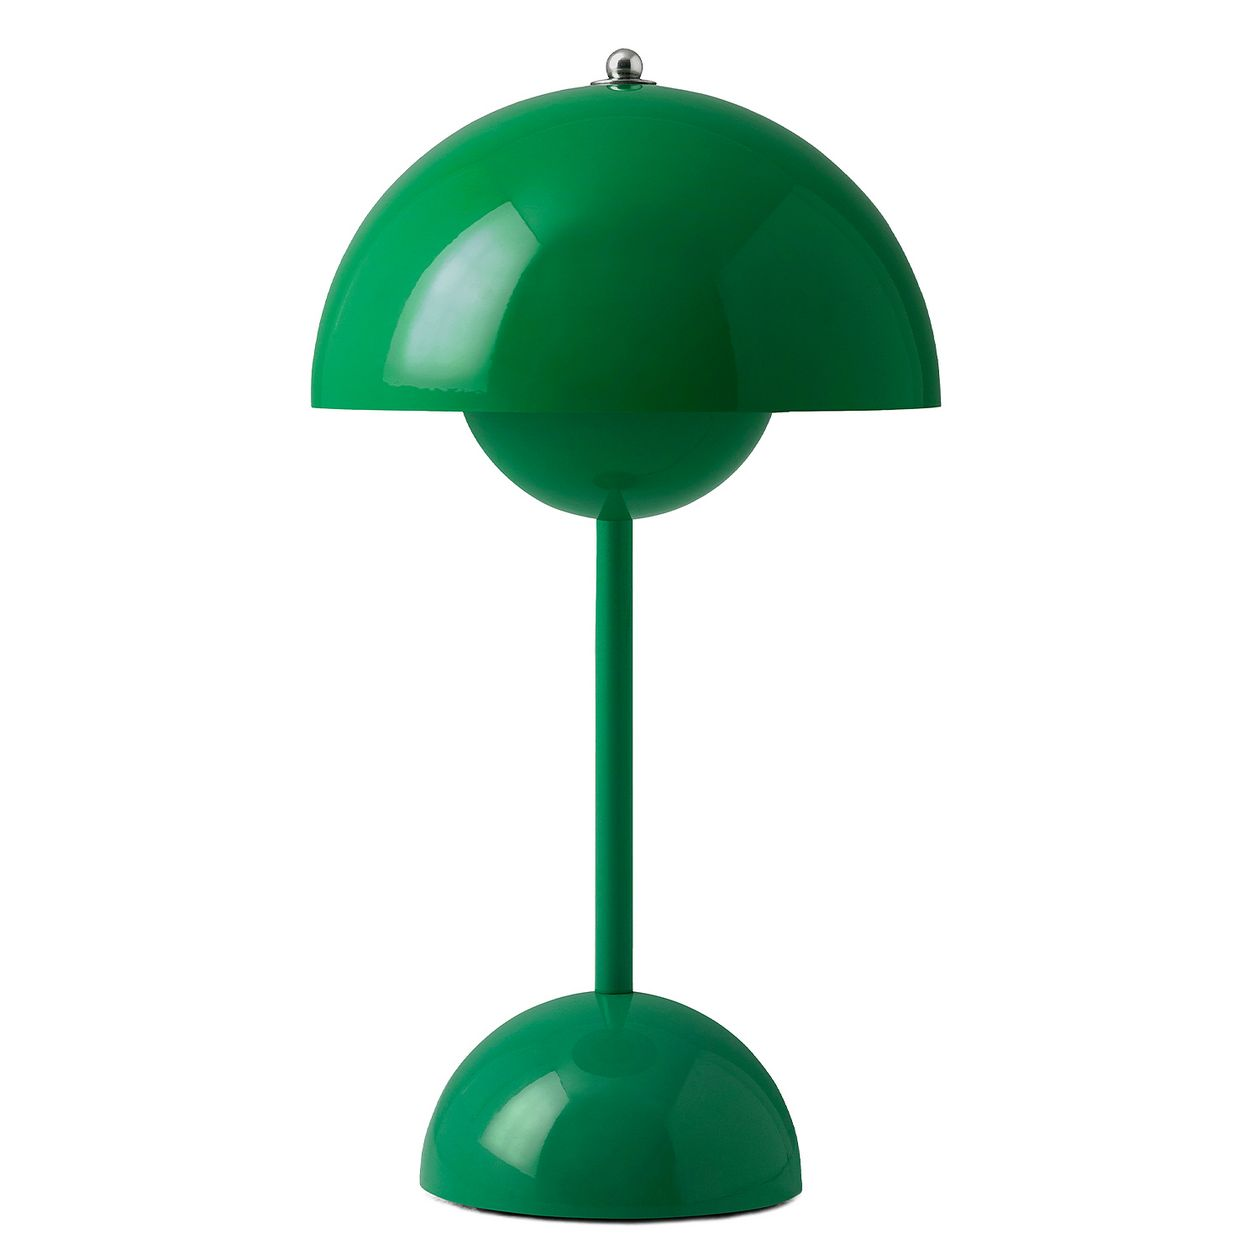 &Tradition Flowerpot VP9 portable table lamp, signal green